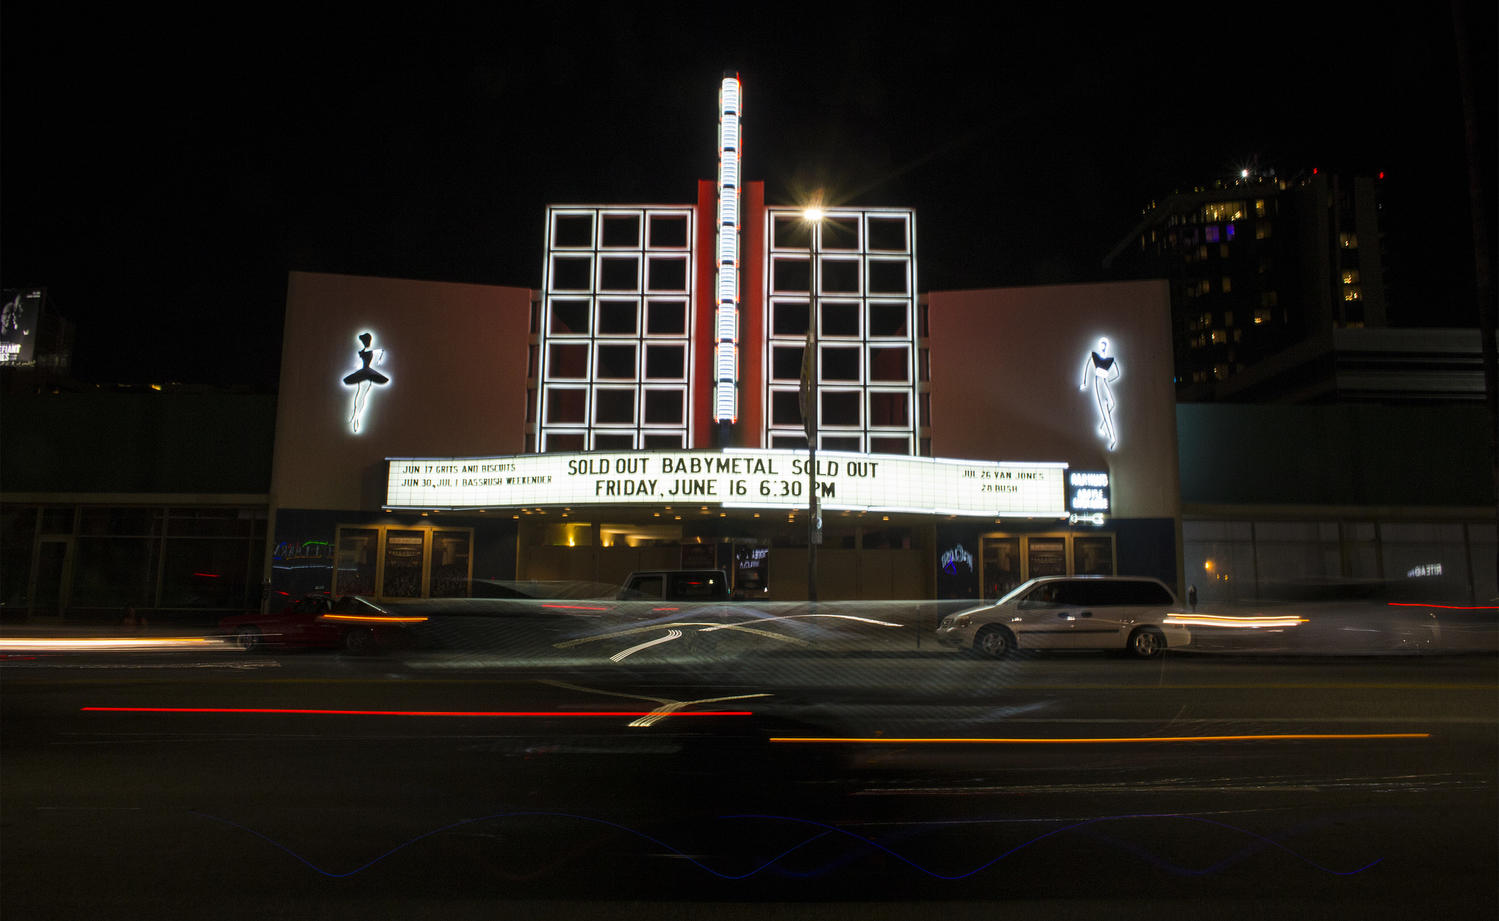 The Palladium on Sunset Boulevard is lit up on June 16, 2017. (Gina Ferazzi / Los Angeles Times)